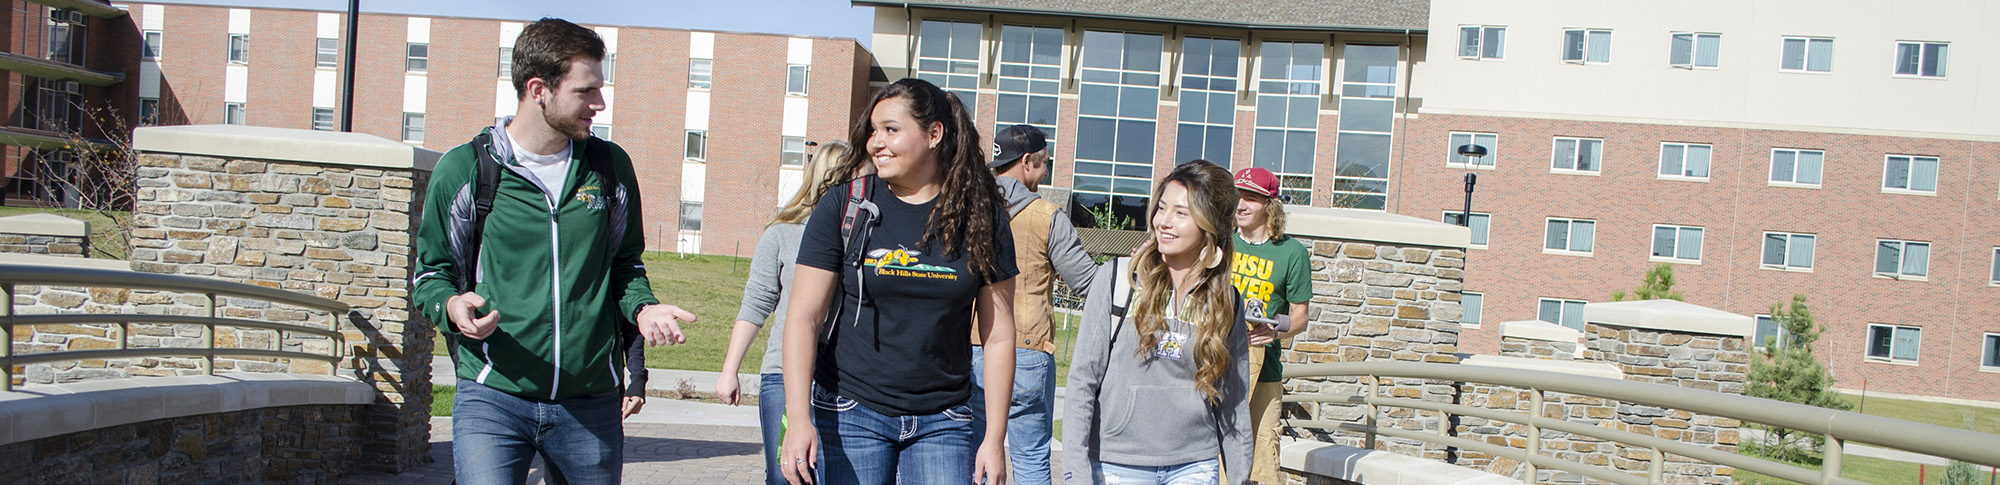 Attend Open House at BHSU July 8.